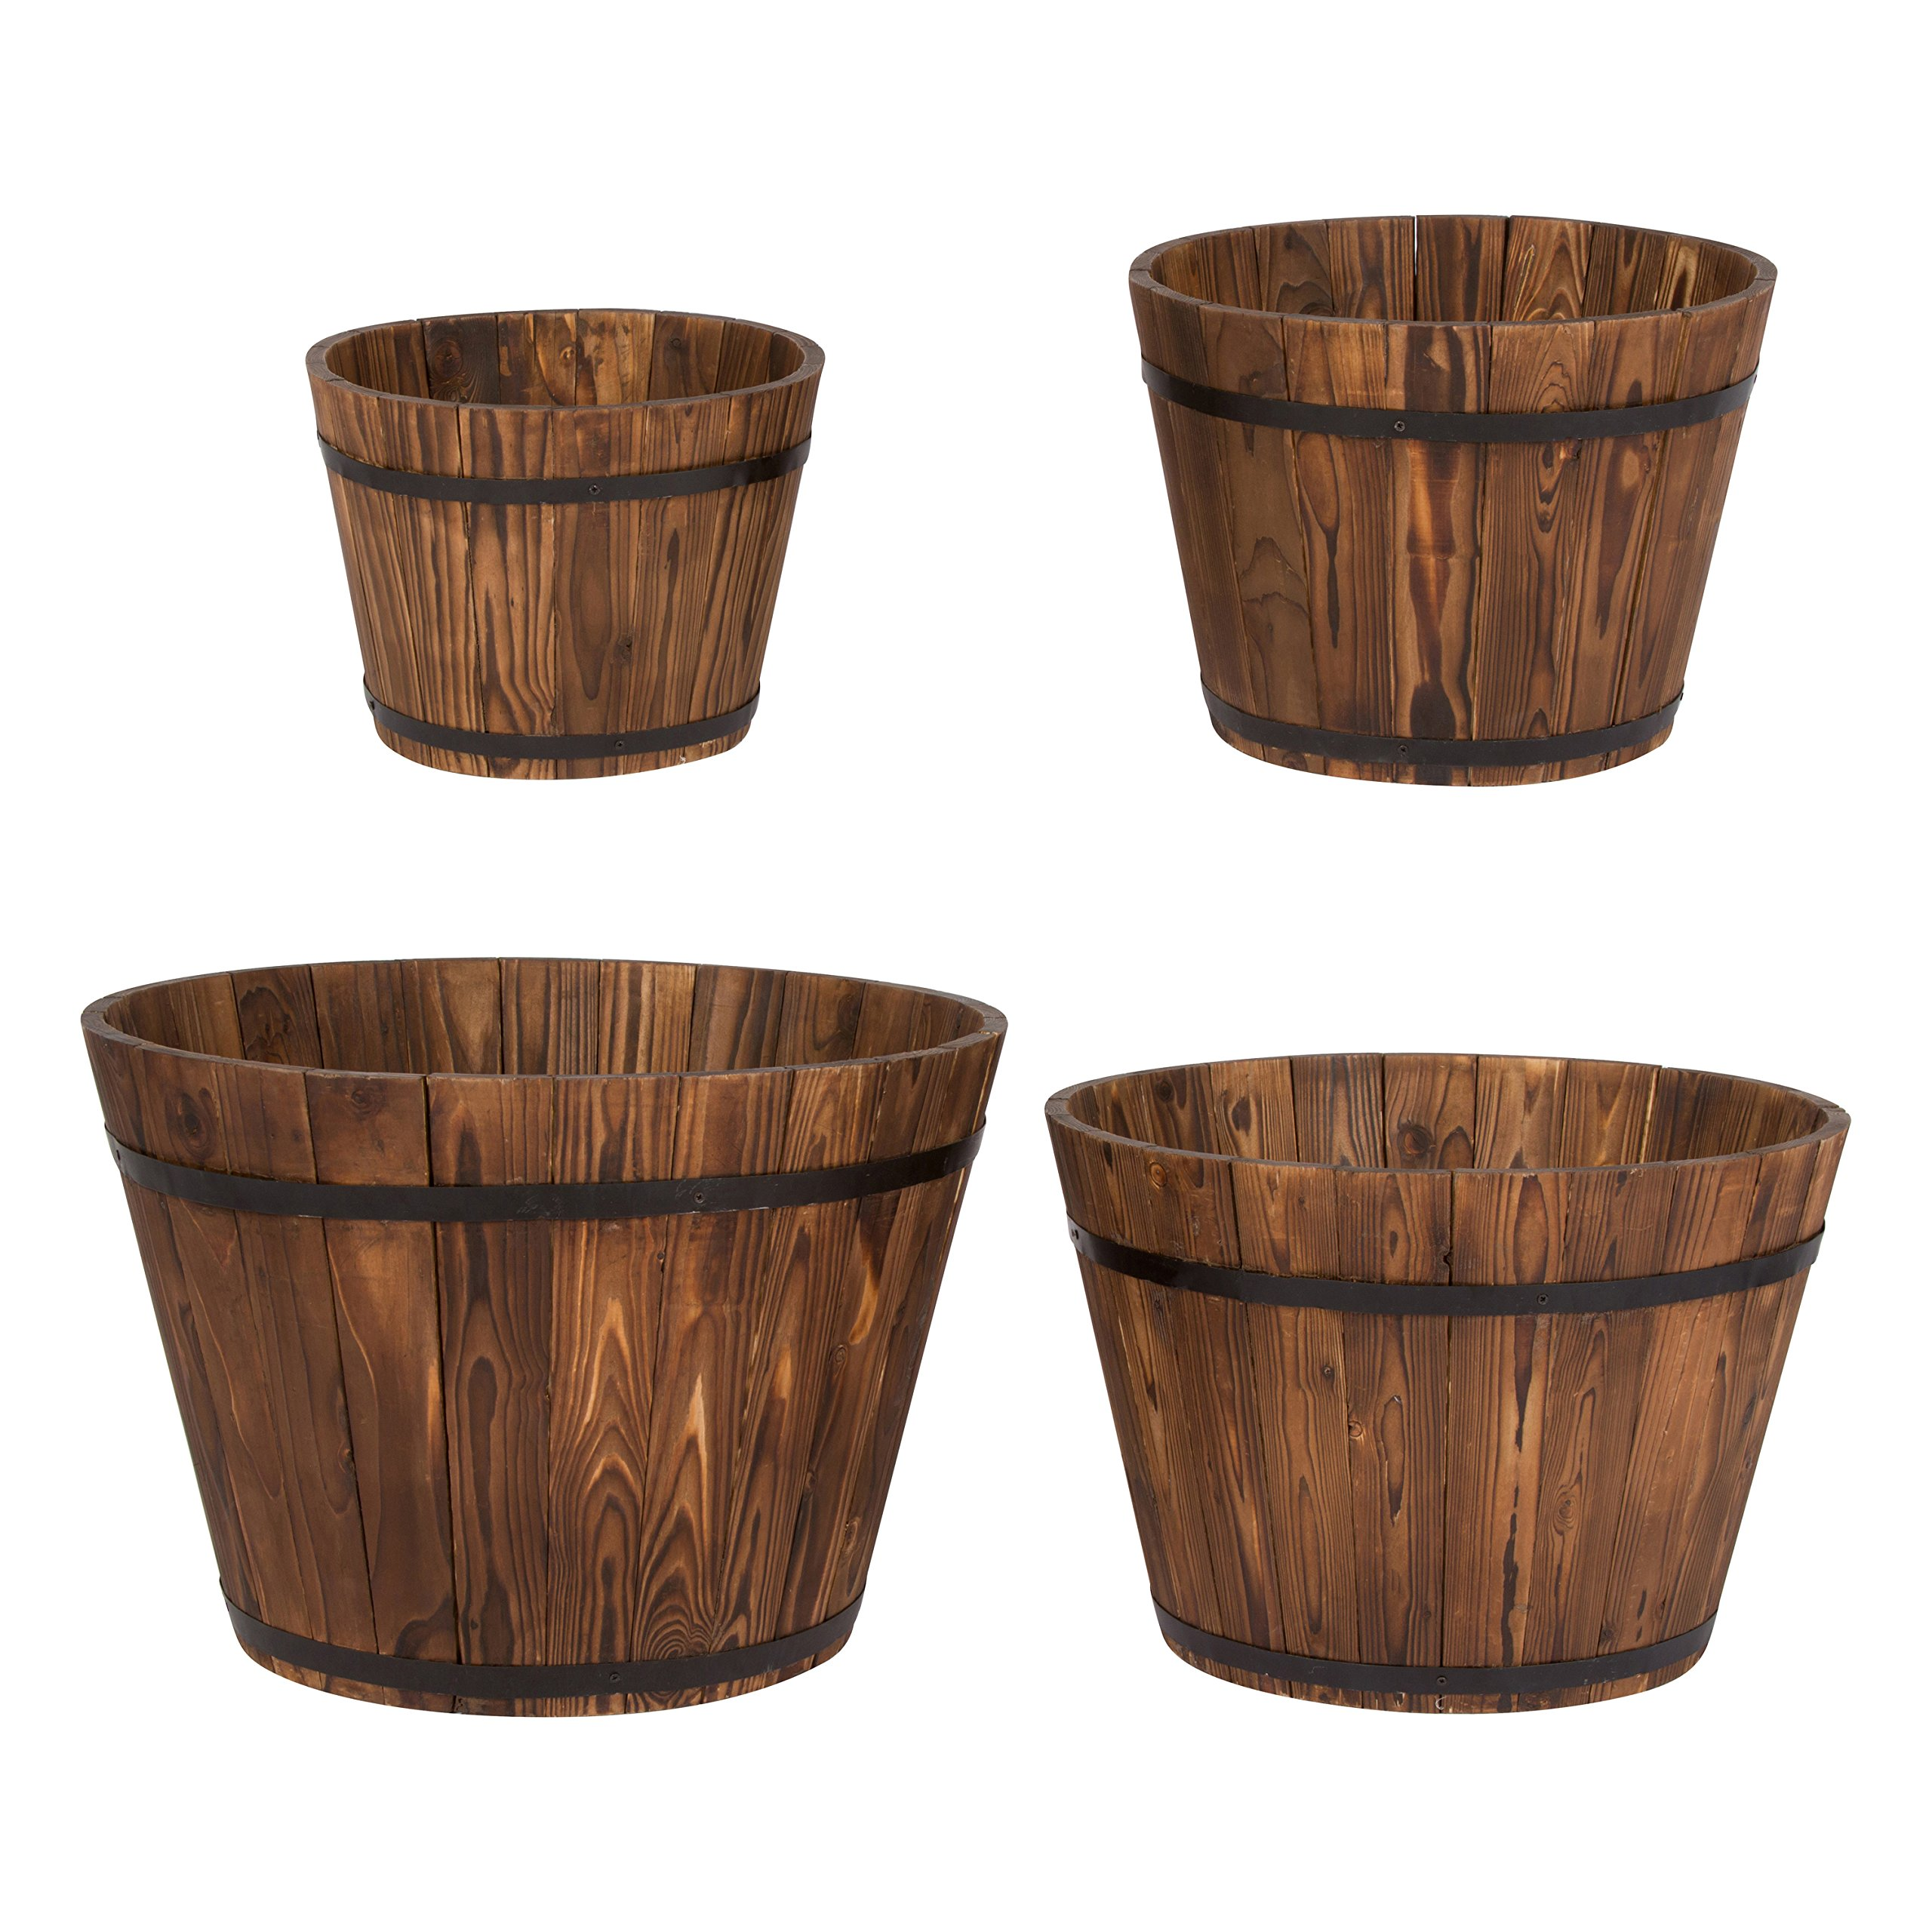 Shine Company Round Tall Cedar Barrel Set of 4, Burnt Brown by Shine Company Inc.